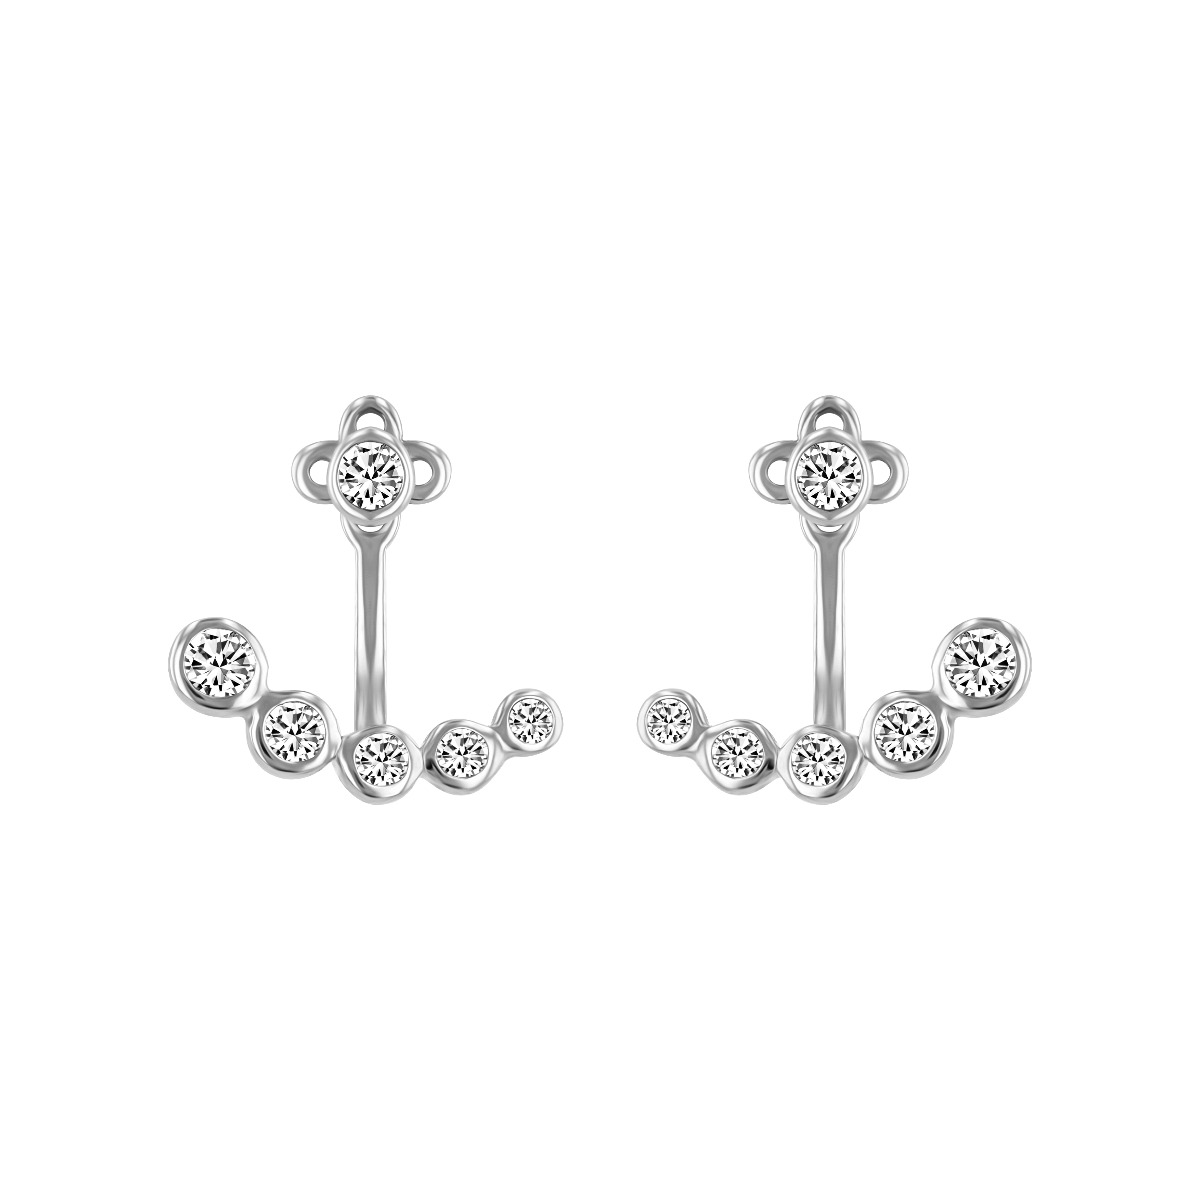 Radiance Collection Diamond Stud Earrings with Diamond Jacket | 9K White Gold